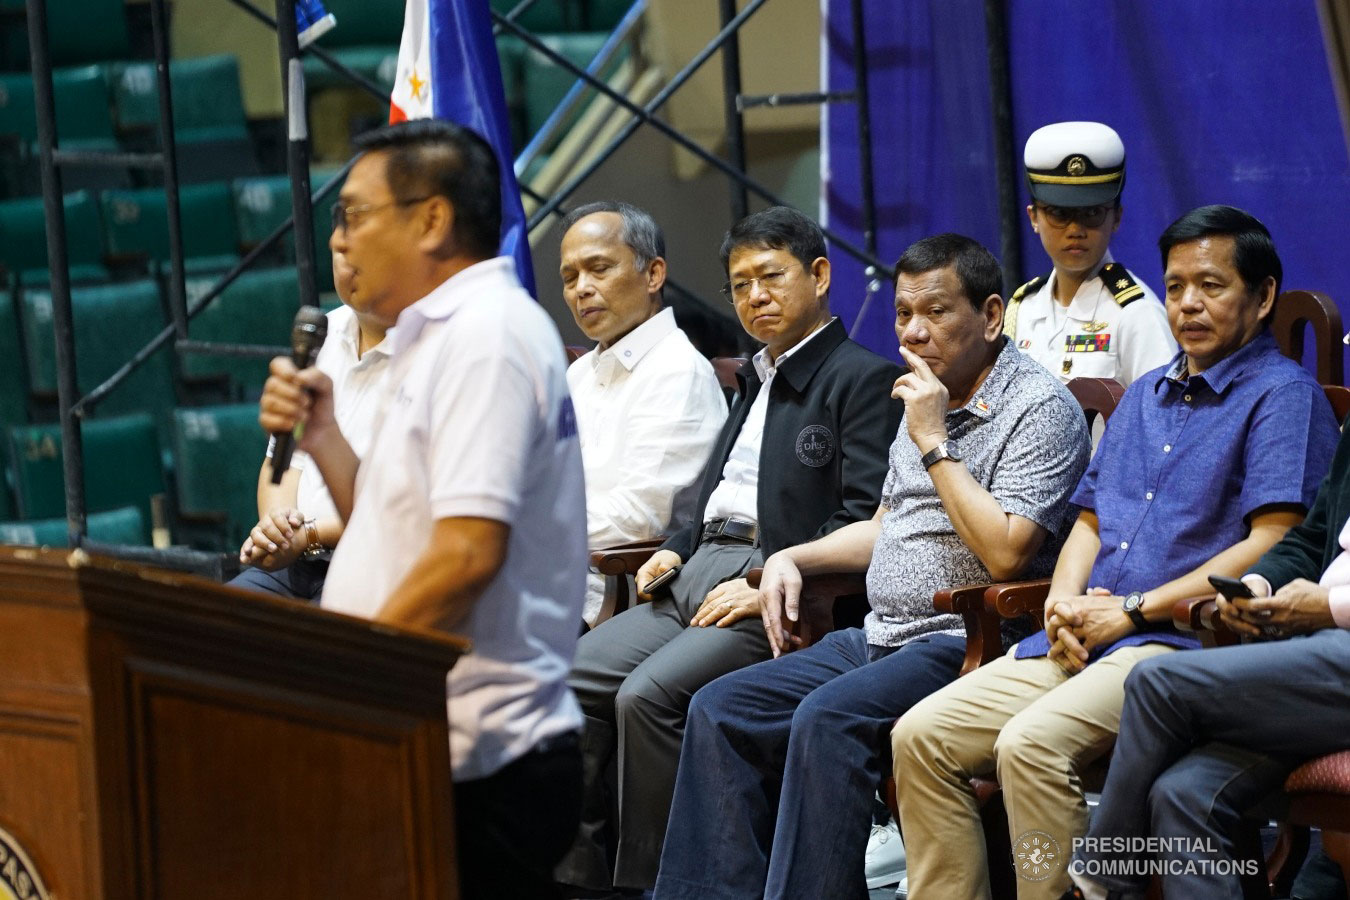 President Rodrigo Roa Duterte listens attentively to NCR TODA Coalition President Ace Sevilla, as the latter gives his message during the Tricycle Operators and Drivers' Association (TODA) Summit at the Cuneta Astrodome in Pasay City on January 23, 2019. Also in the photo are Energy Secretary Alfonso Cusi, Interior and Local Government Secretary Eduardo Año and Social, and Welfare Development Secretary Rolando Bautista. KING RODRIGUEZ/PRESIDENTIAL PHOTO